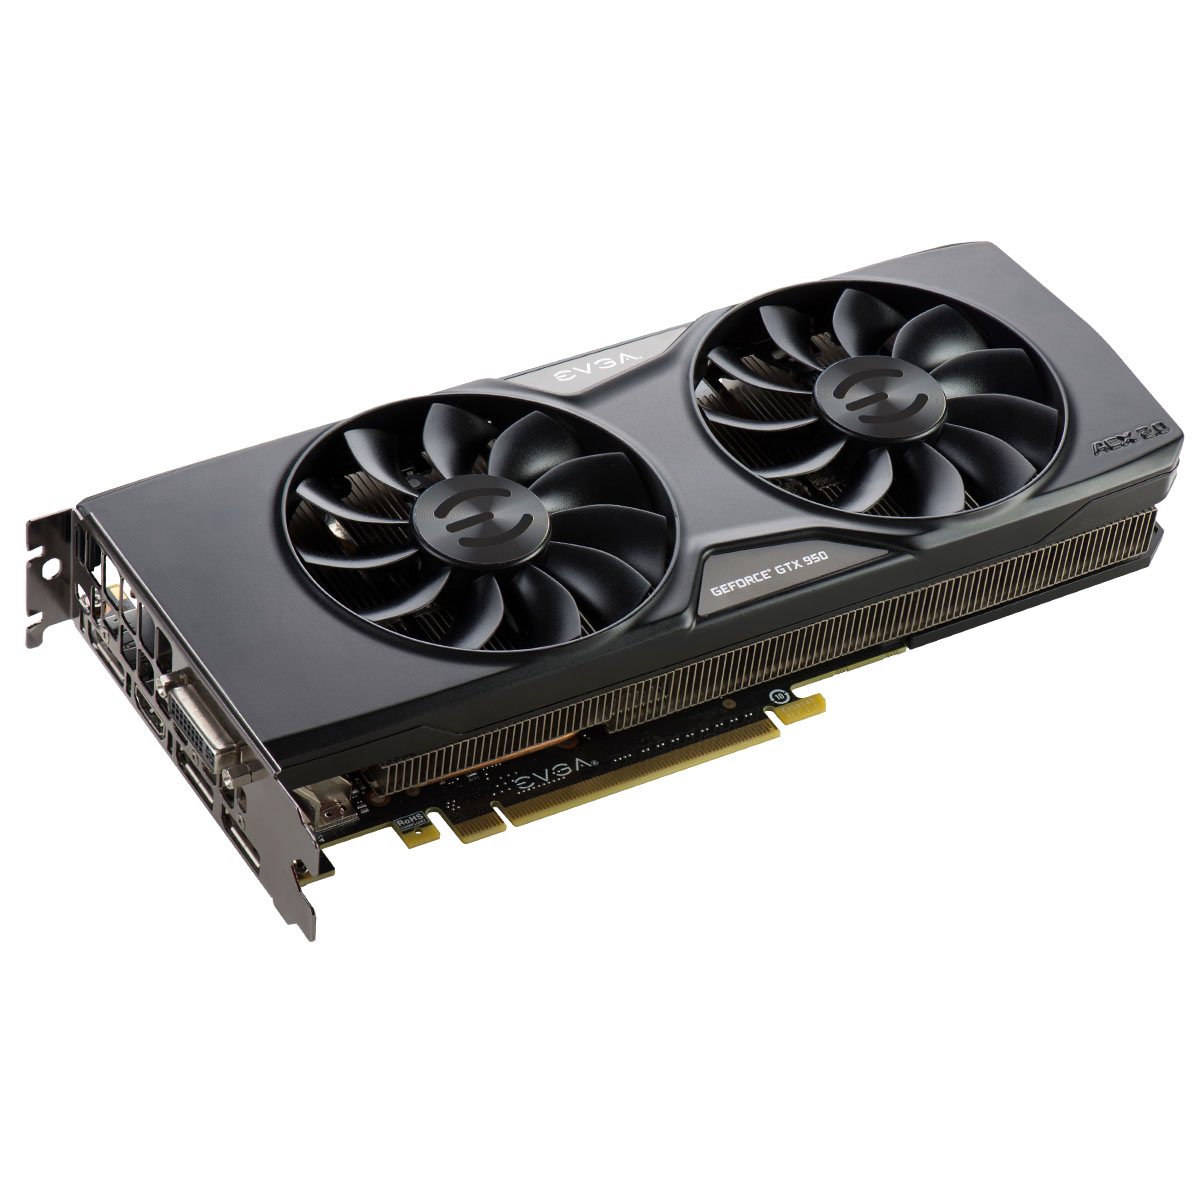 Placa de Vídeo Geforce GTX950 2GB SC Gaming ACX2.0 DDR5 128Bits 02G-P4-2956-KR - EVGA